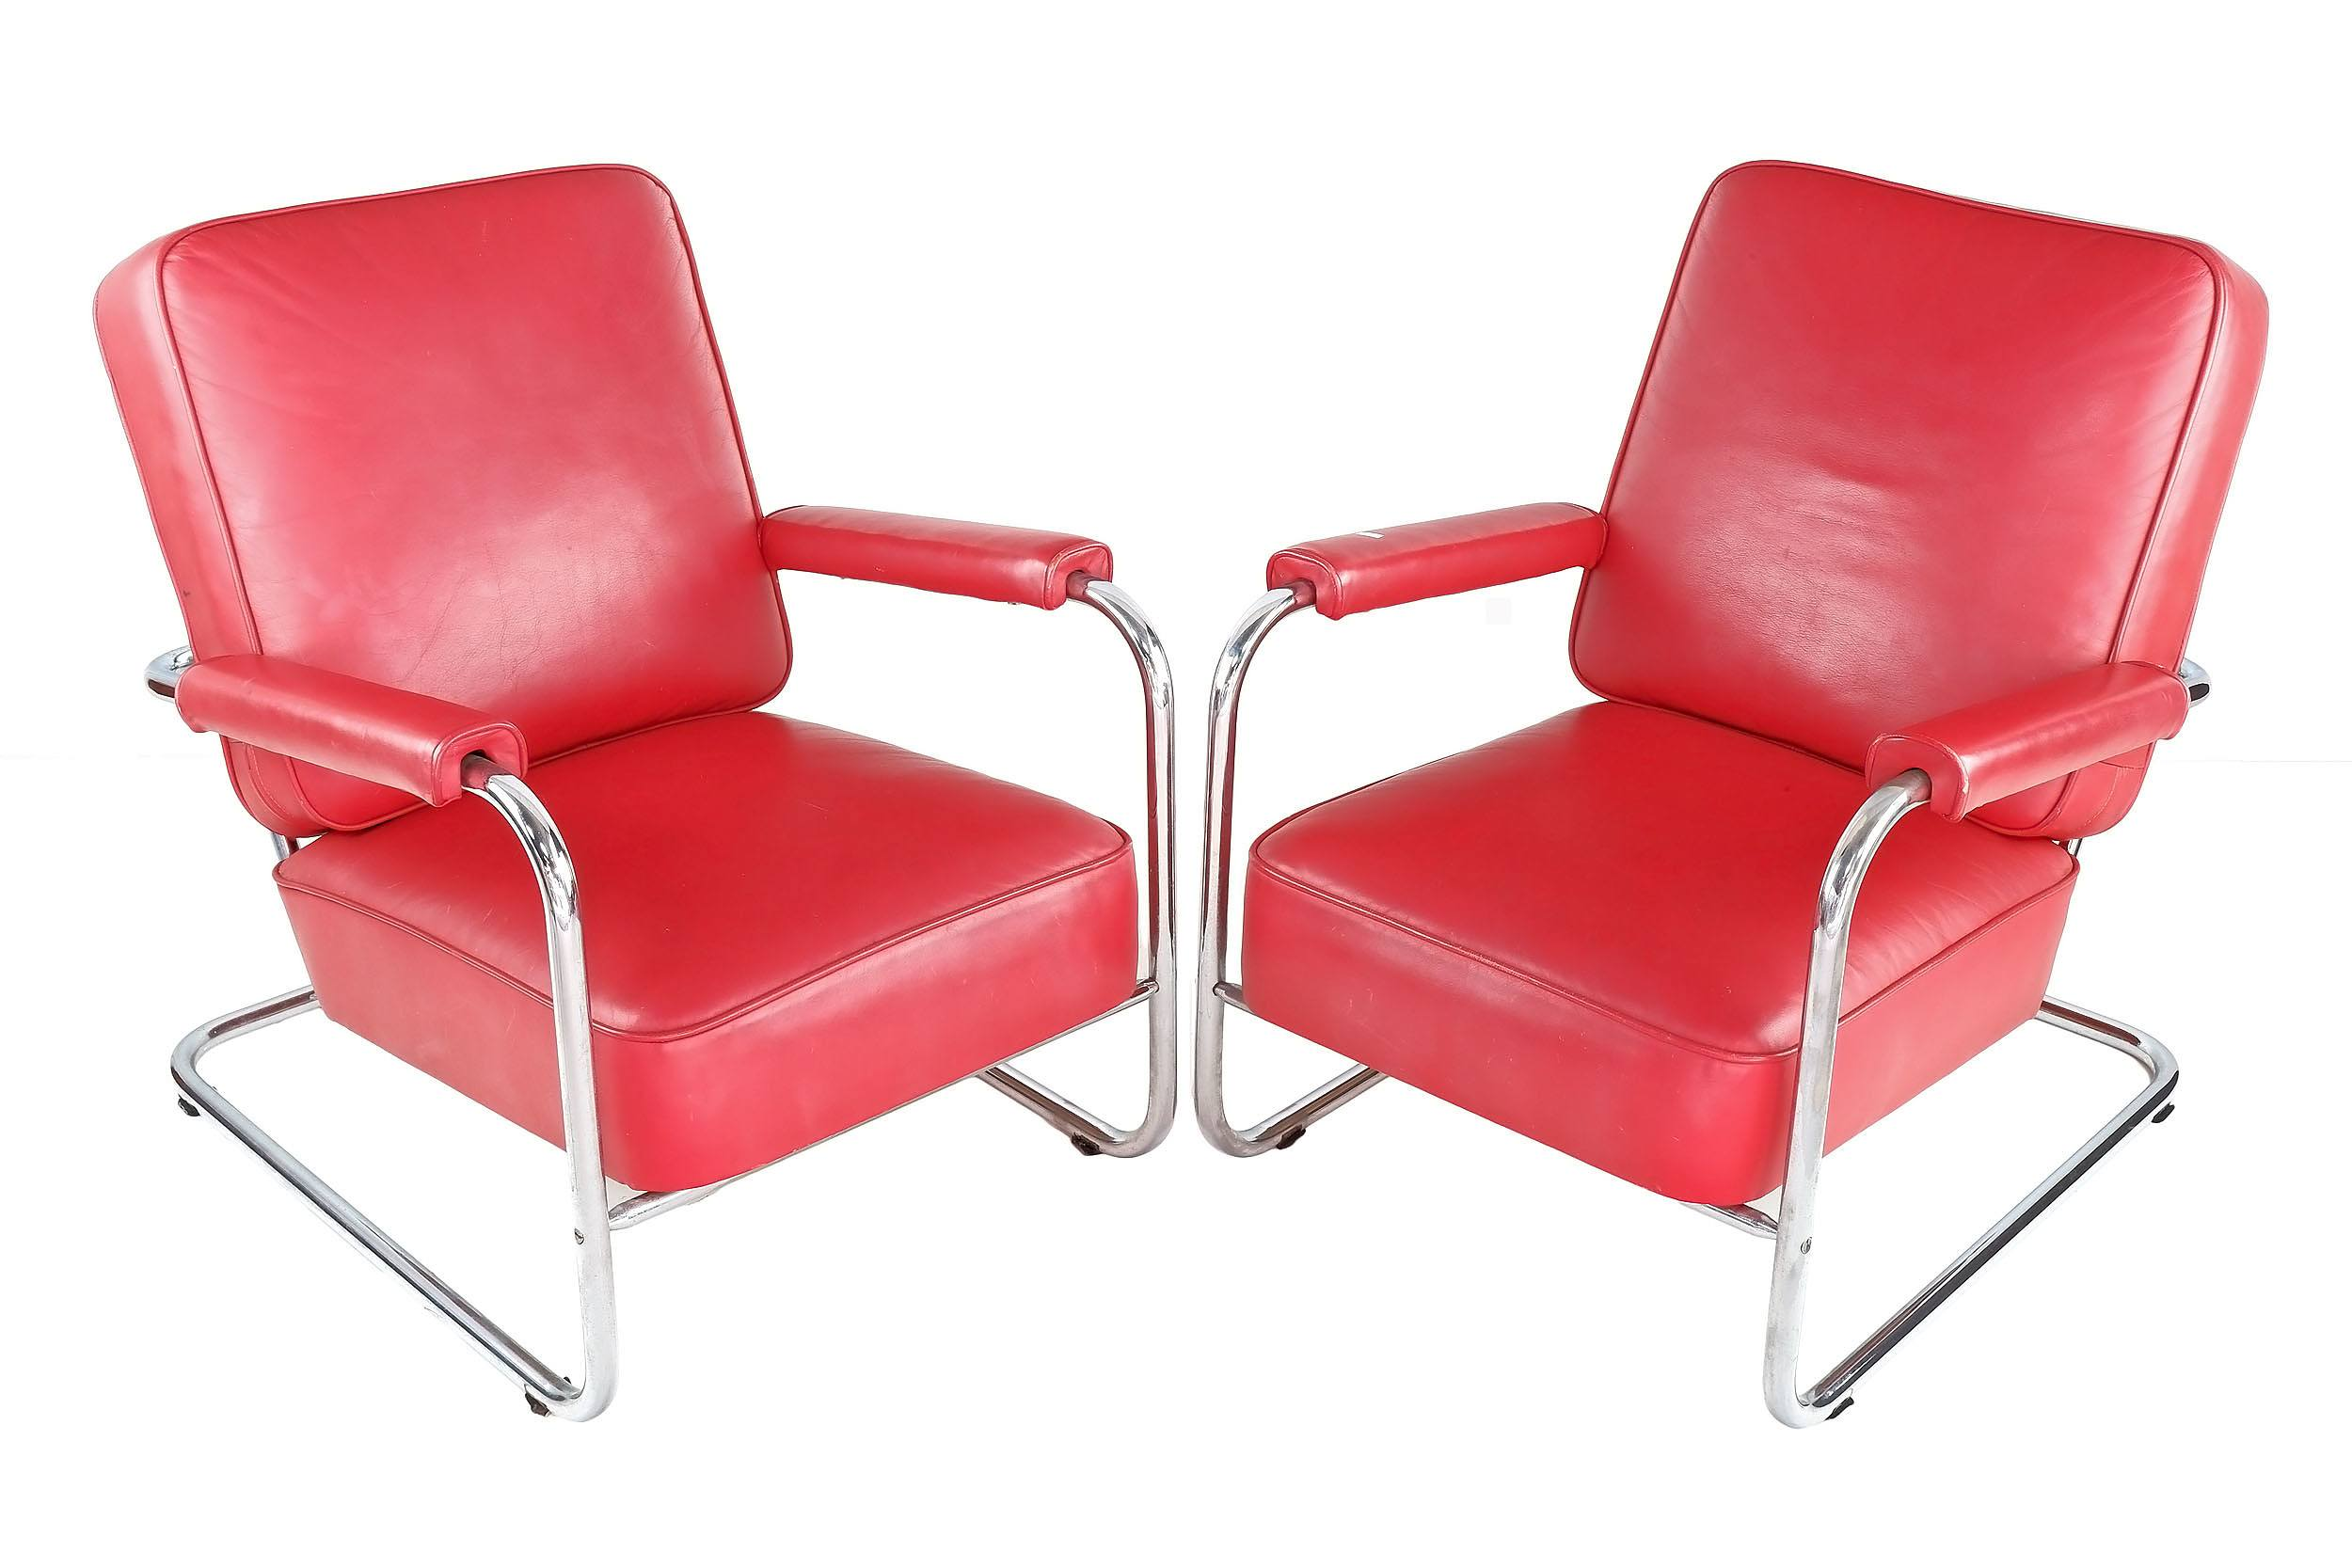 'Pair of Tubular Steel and Red Leather Upholstered Cantilever Armchairs'